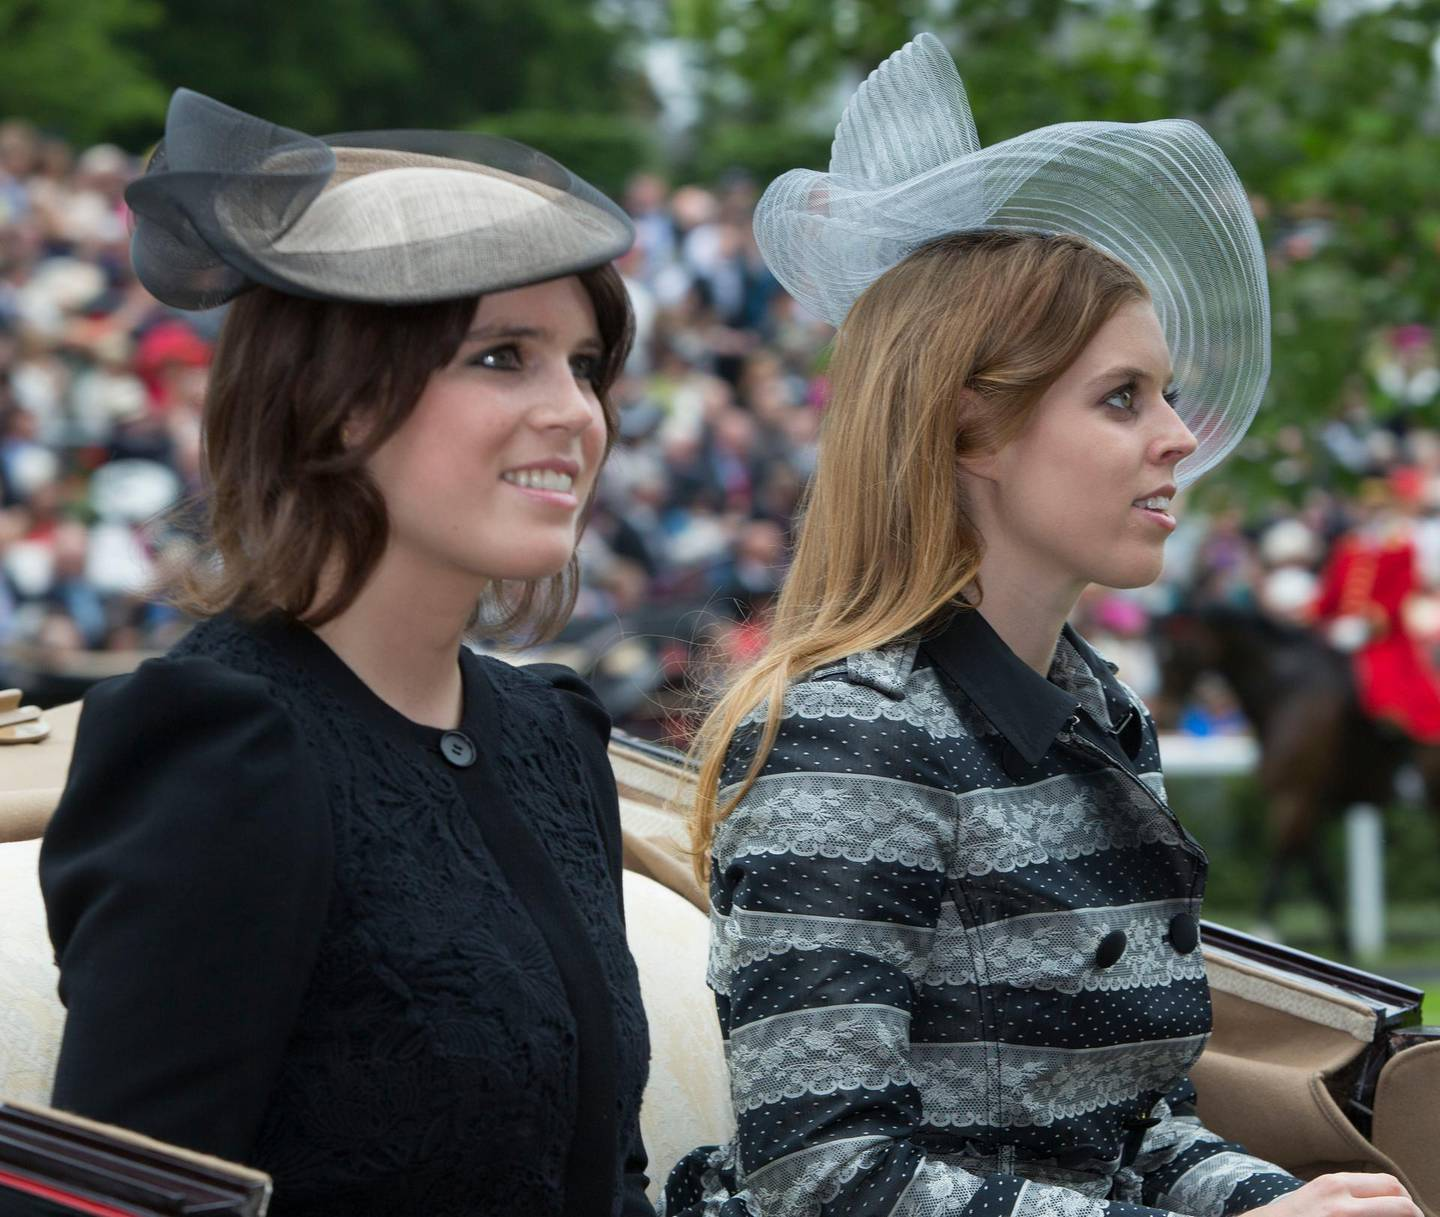 ASCOT -UK - 18 June 2013: Members of the Royal Family join HM Queen Elizabeth for the first day of racing at Royal Ascot in Berkshire. The Queen arrived by carriage with Prince Charles and Camilla, Duchess of Cornwall. Princess Eugenie and Princess Beatrice (rt) arrives by carriage.Photograph by Ian Jones *** Local Caption ***  IJP-17-6-13-Royal-Ascot-20.jpg IJP-17-6-13-Royal-Ascot-20_4.jpg